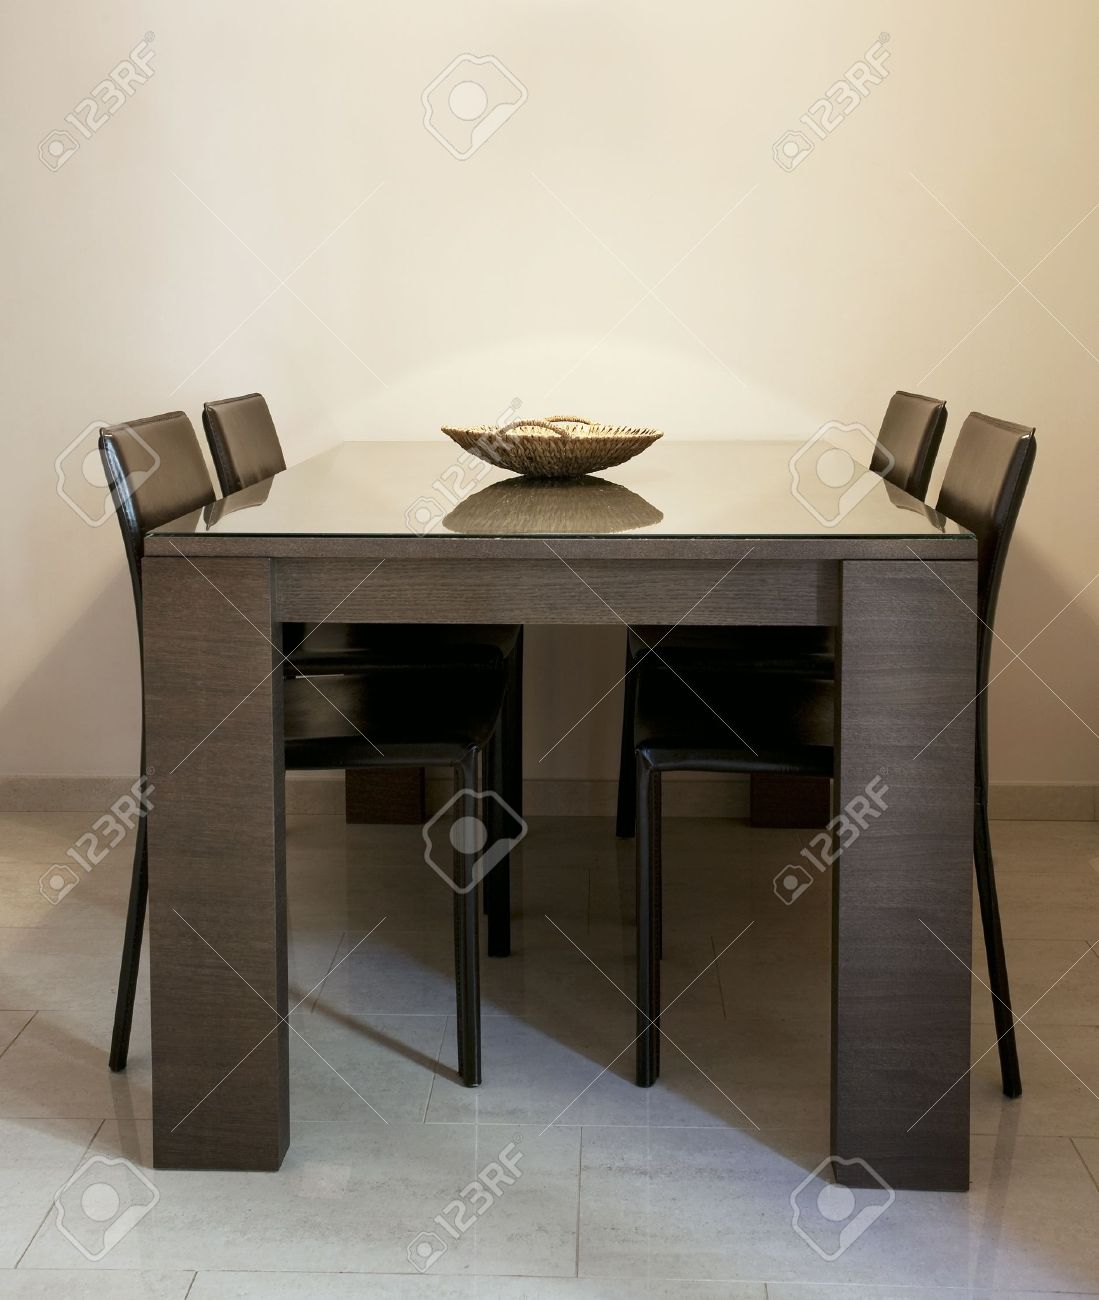 Modern dining room with brown chairs and a table with glass coating Stock Photo - 10015811